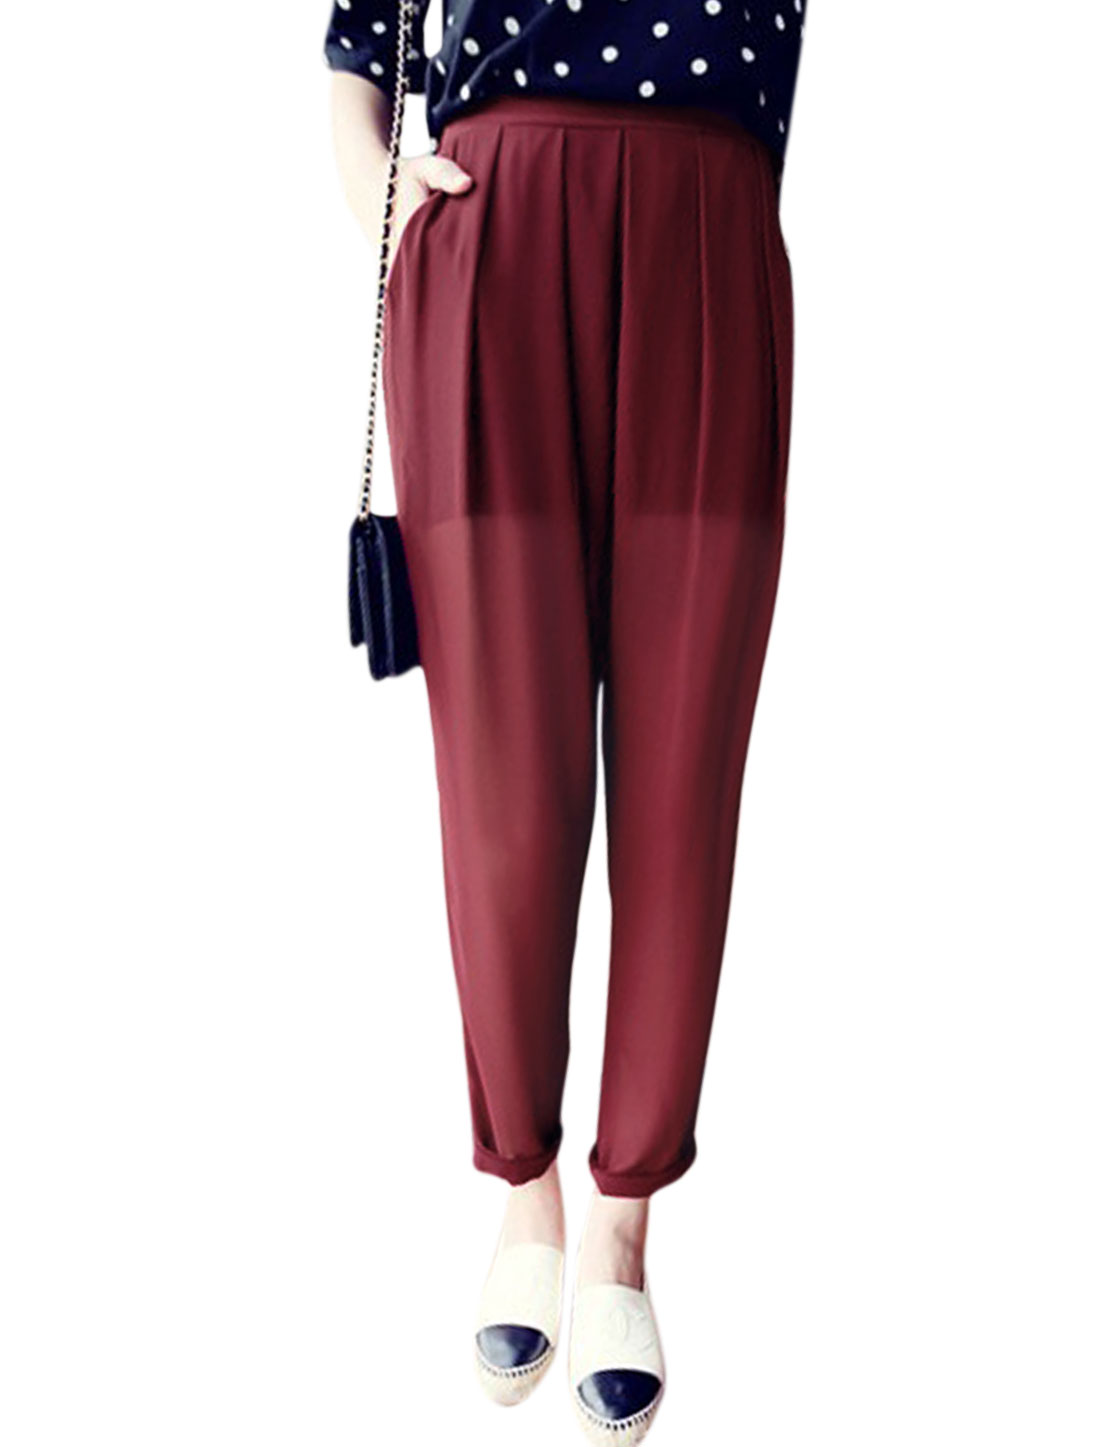 Woman Half Lined Slant Pockets Front Semi Sheer Chiffon Casual Pants Burgundy S